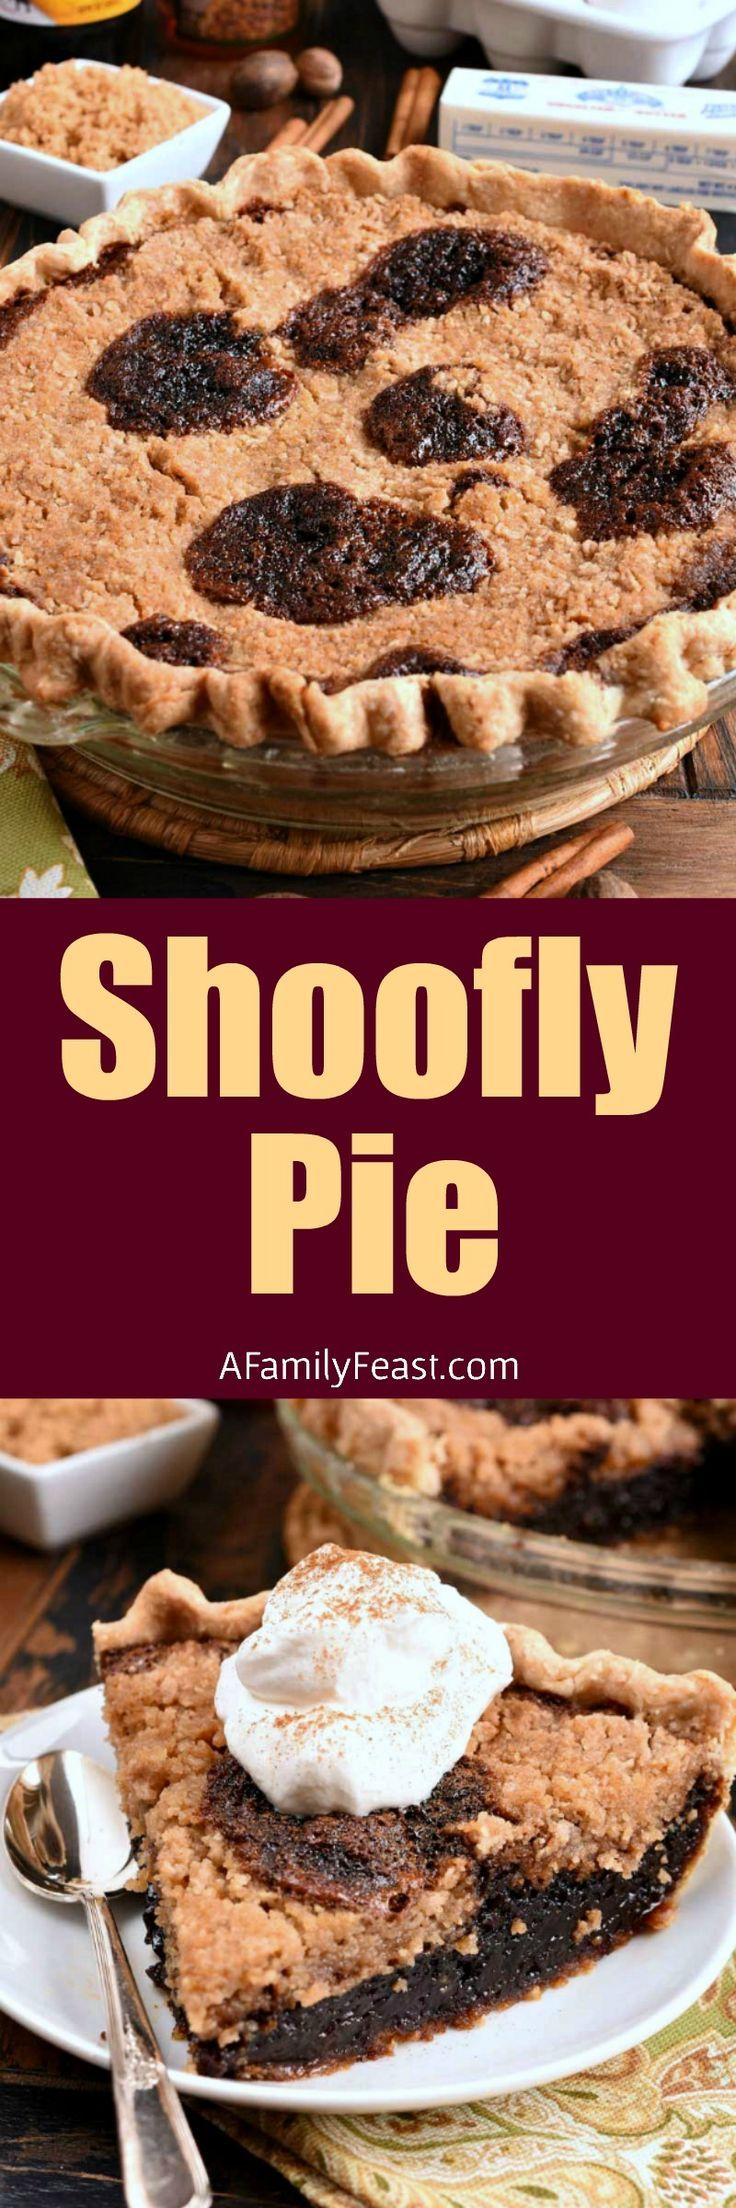 Shoo Fly Pie is a vintage molasses and crumb pie that is absolutely delicious! #pie #molasses #shooflypie #vintagerecipe